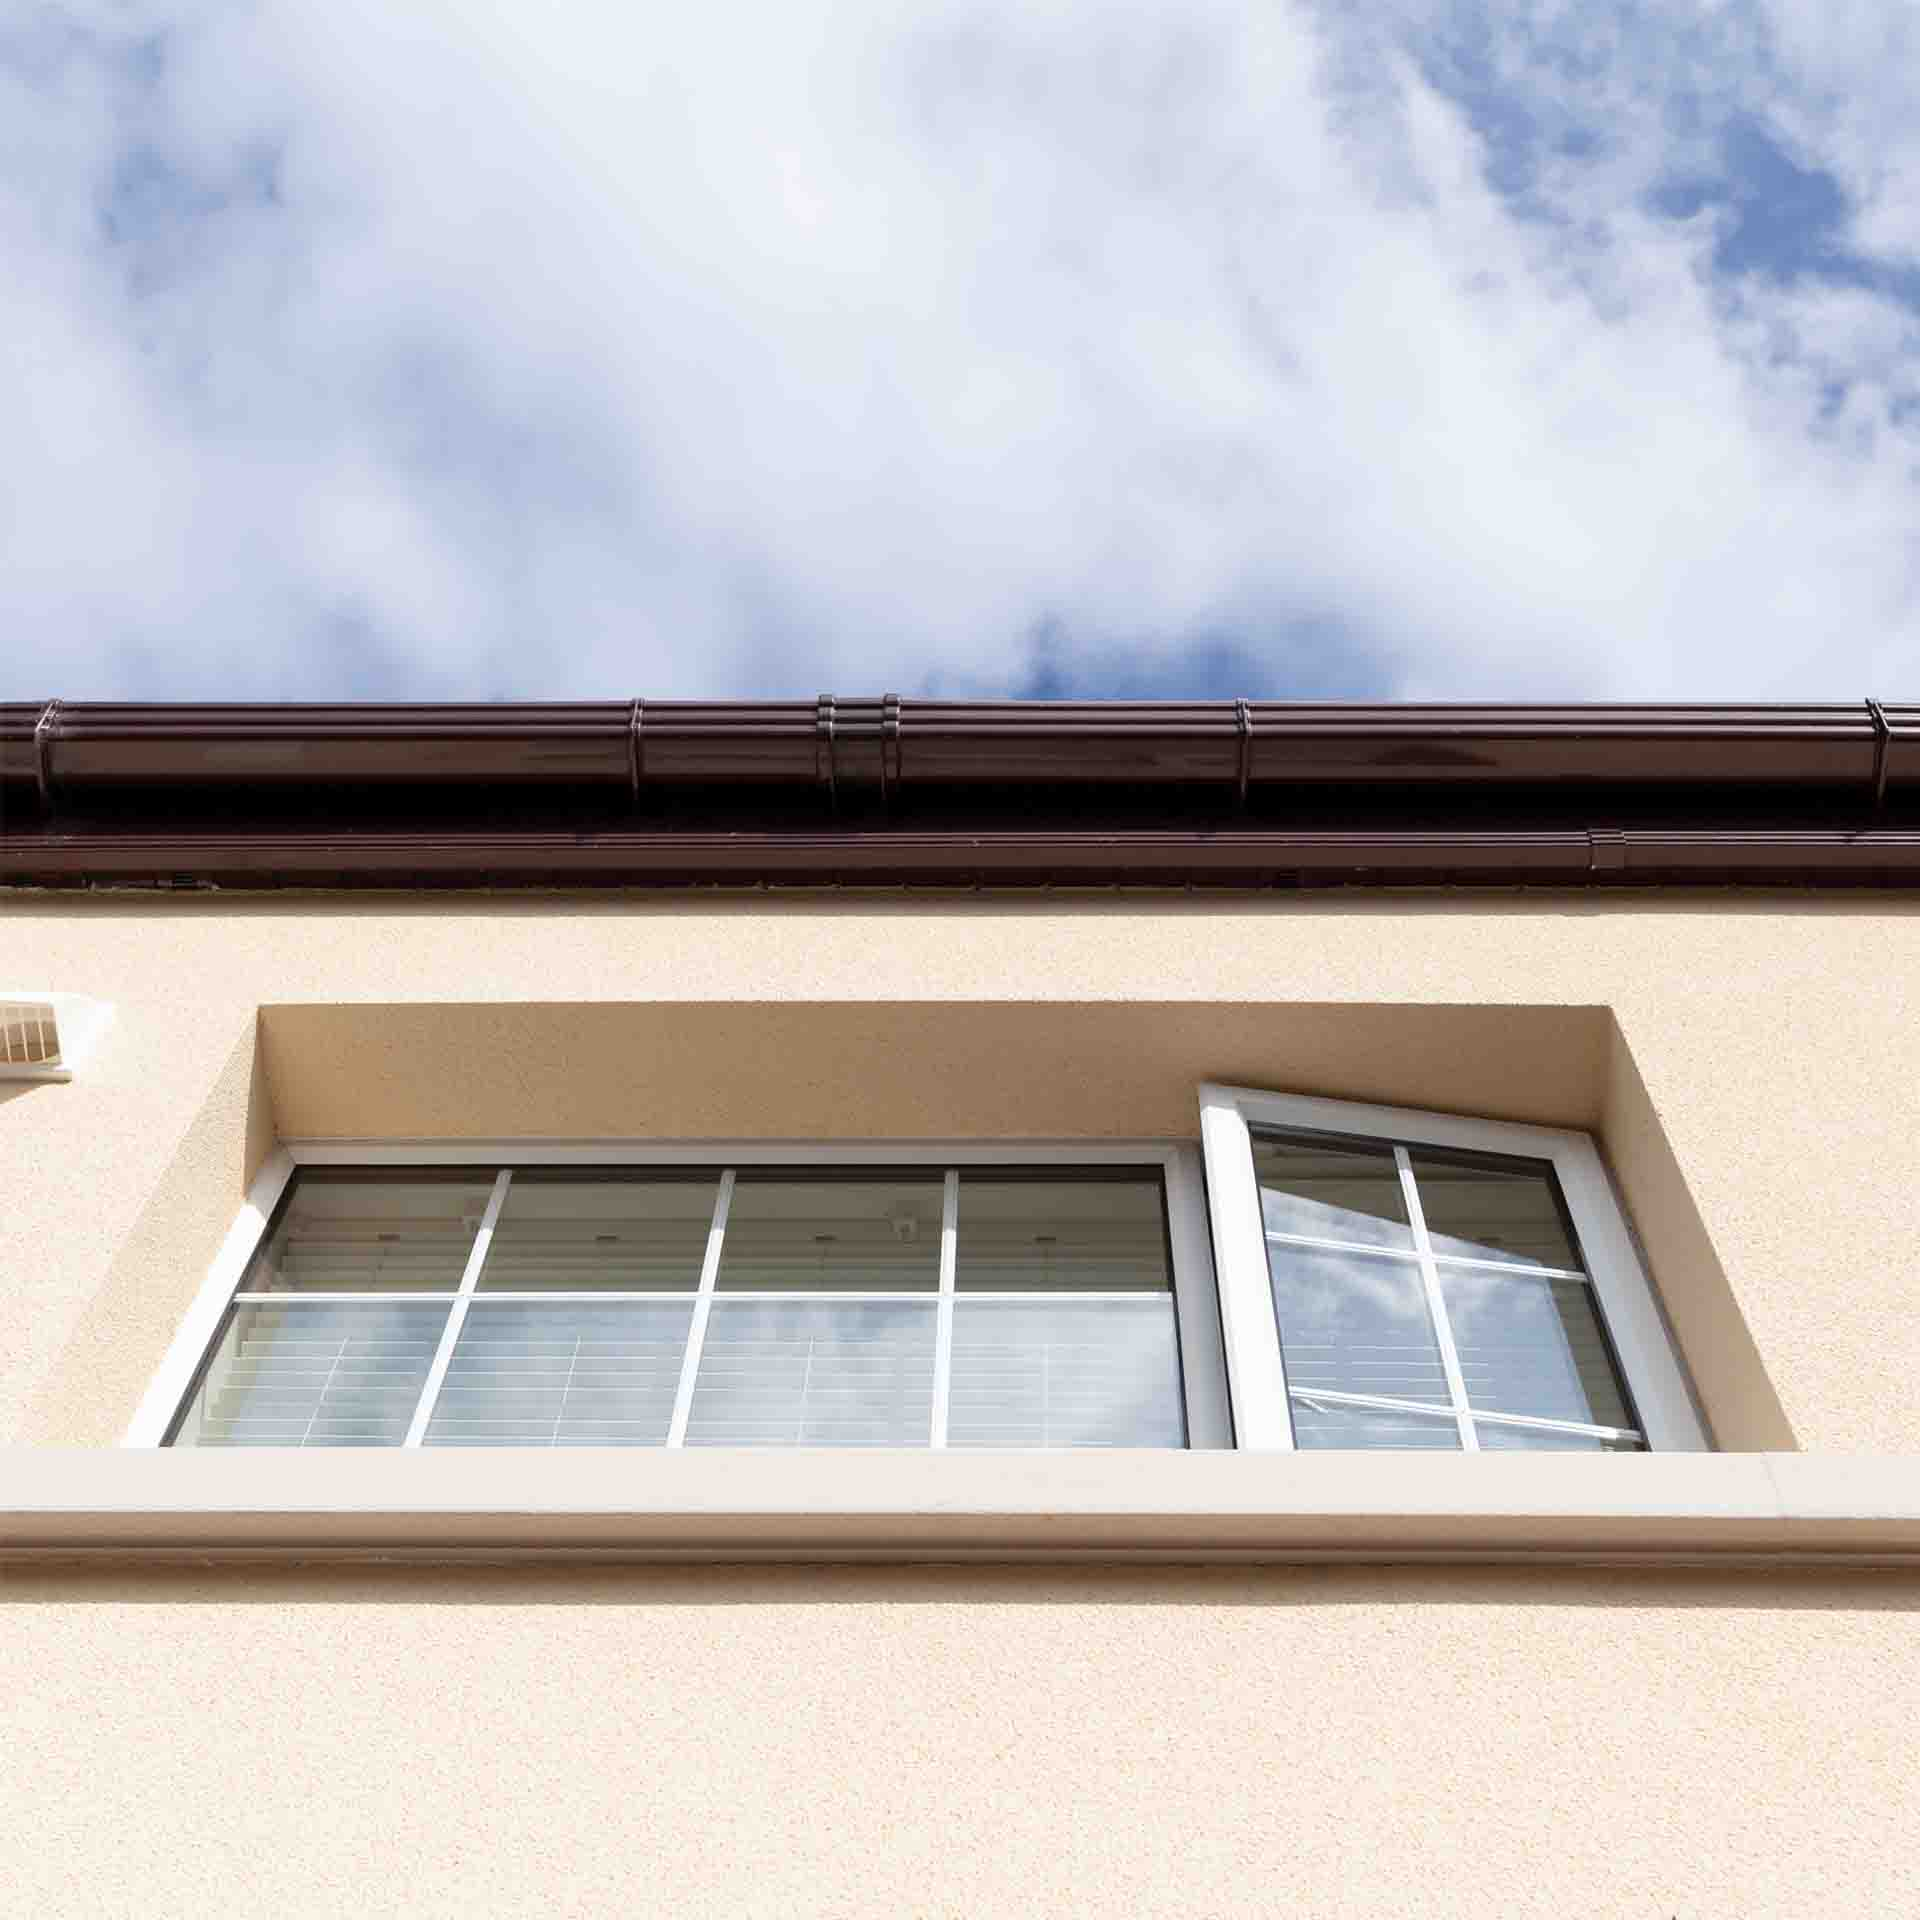 Example of a window replacement in a home that has external wall insulation.